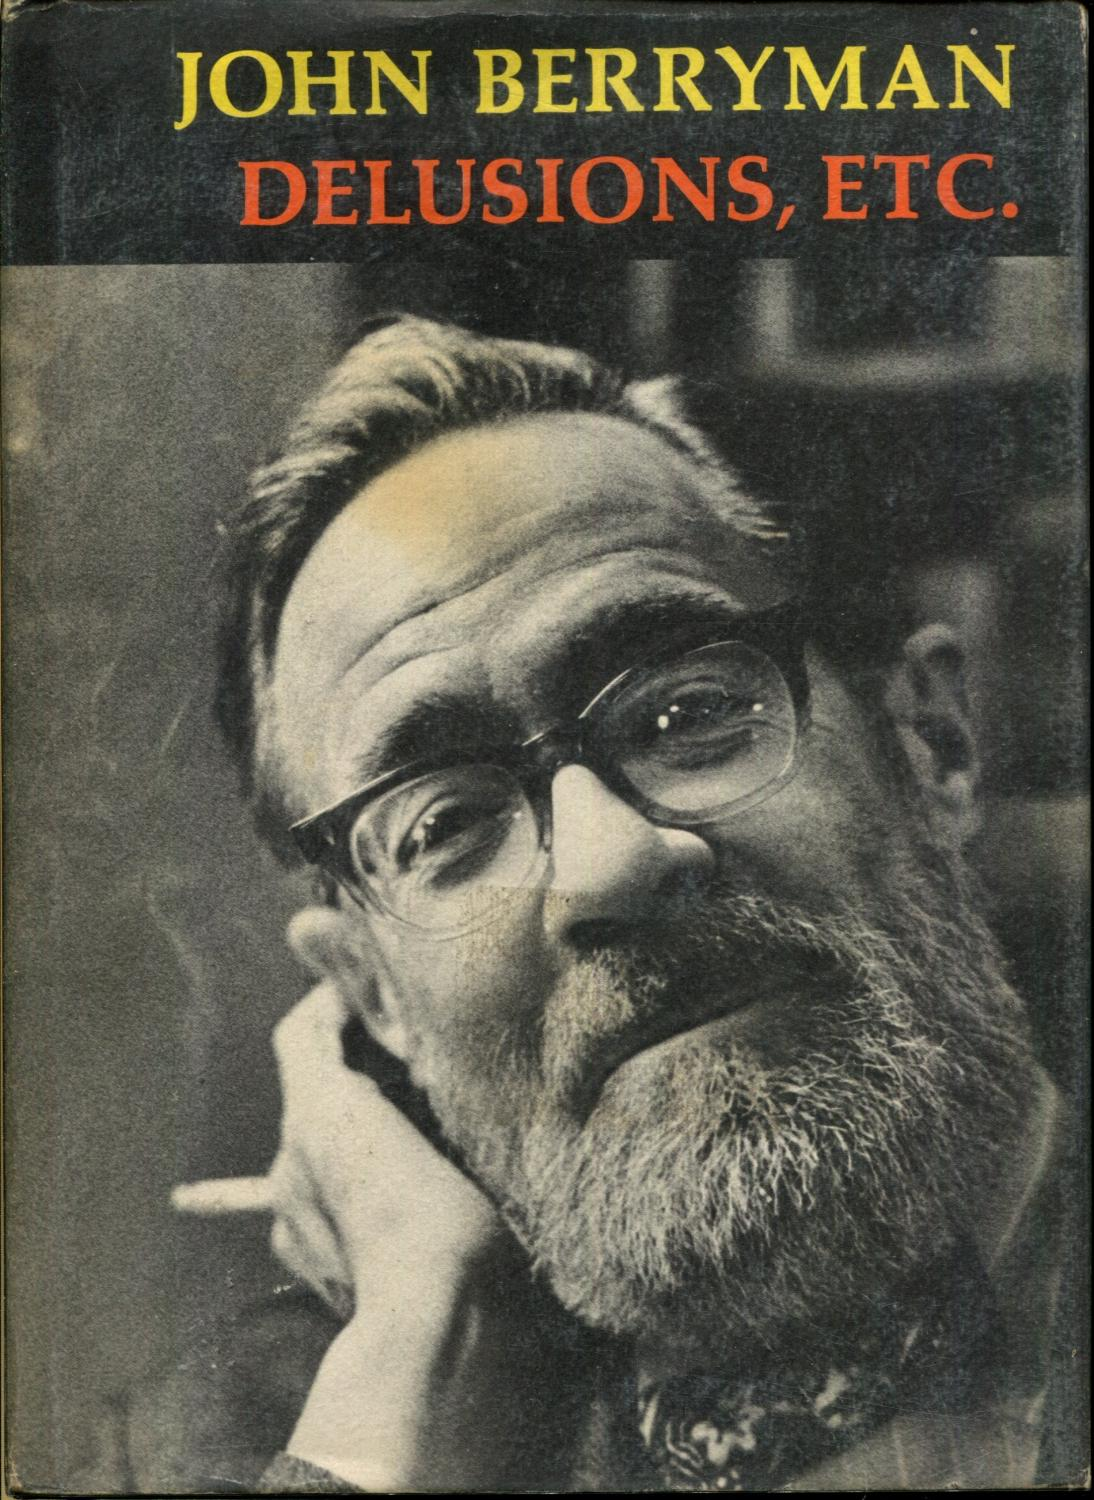 cover of Delusions, Etc. by John Berryman